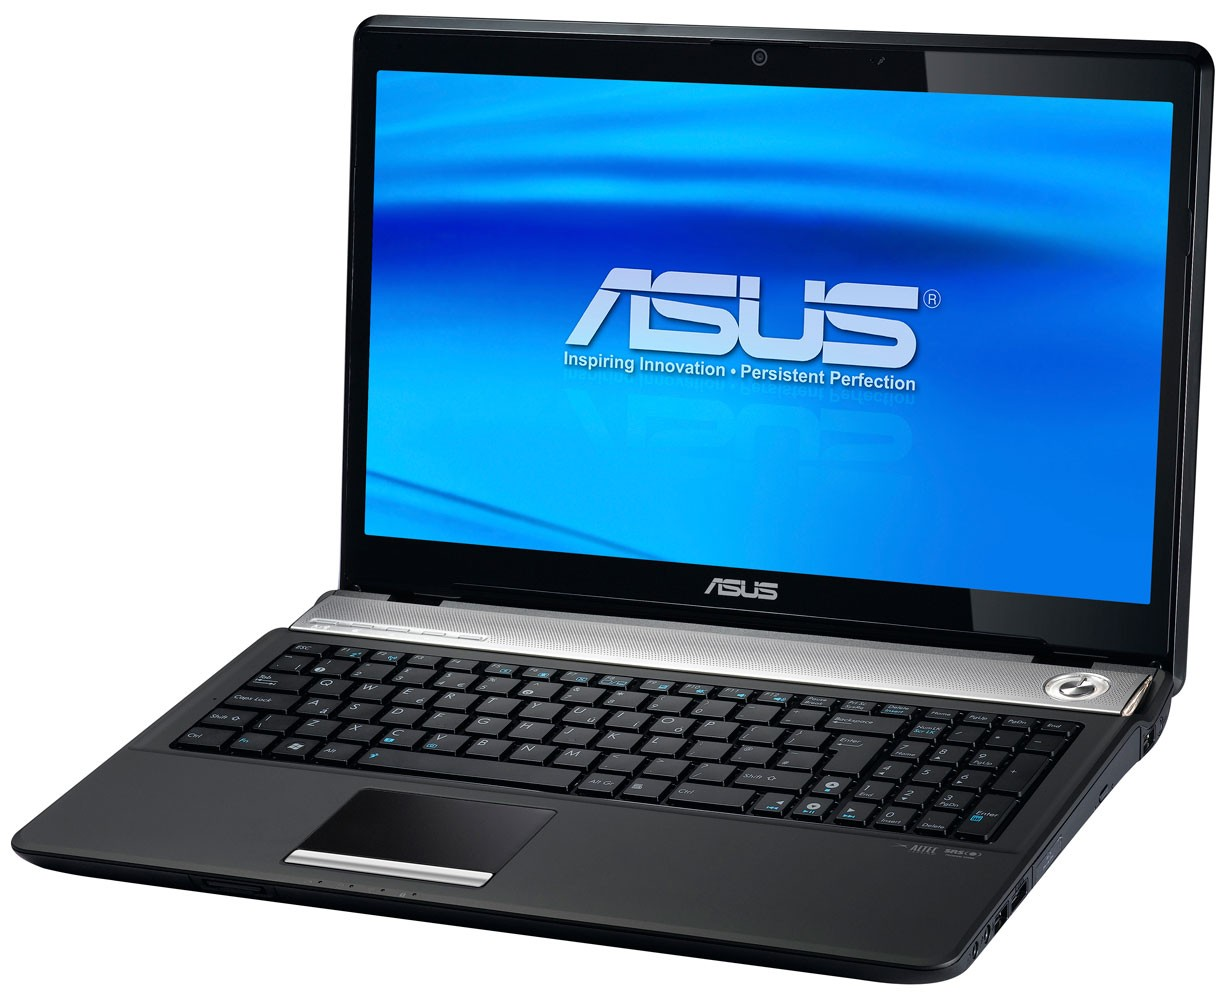 DRIVER FOR ASUS N71JV CAMERA